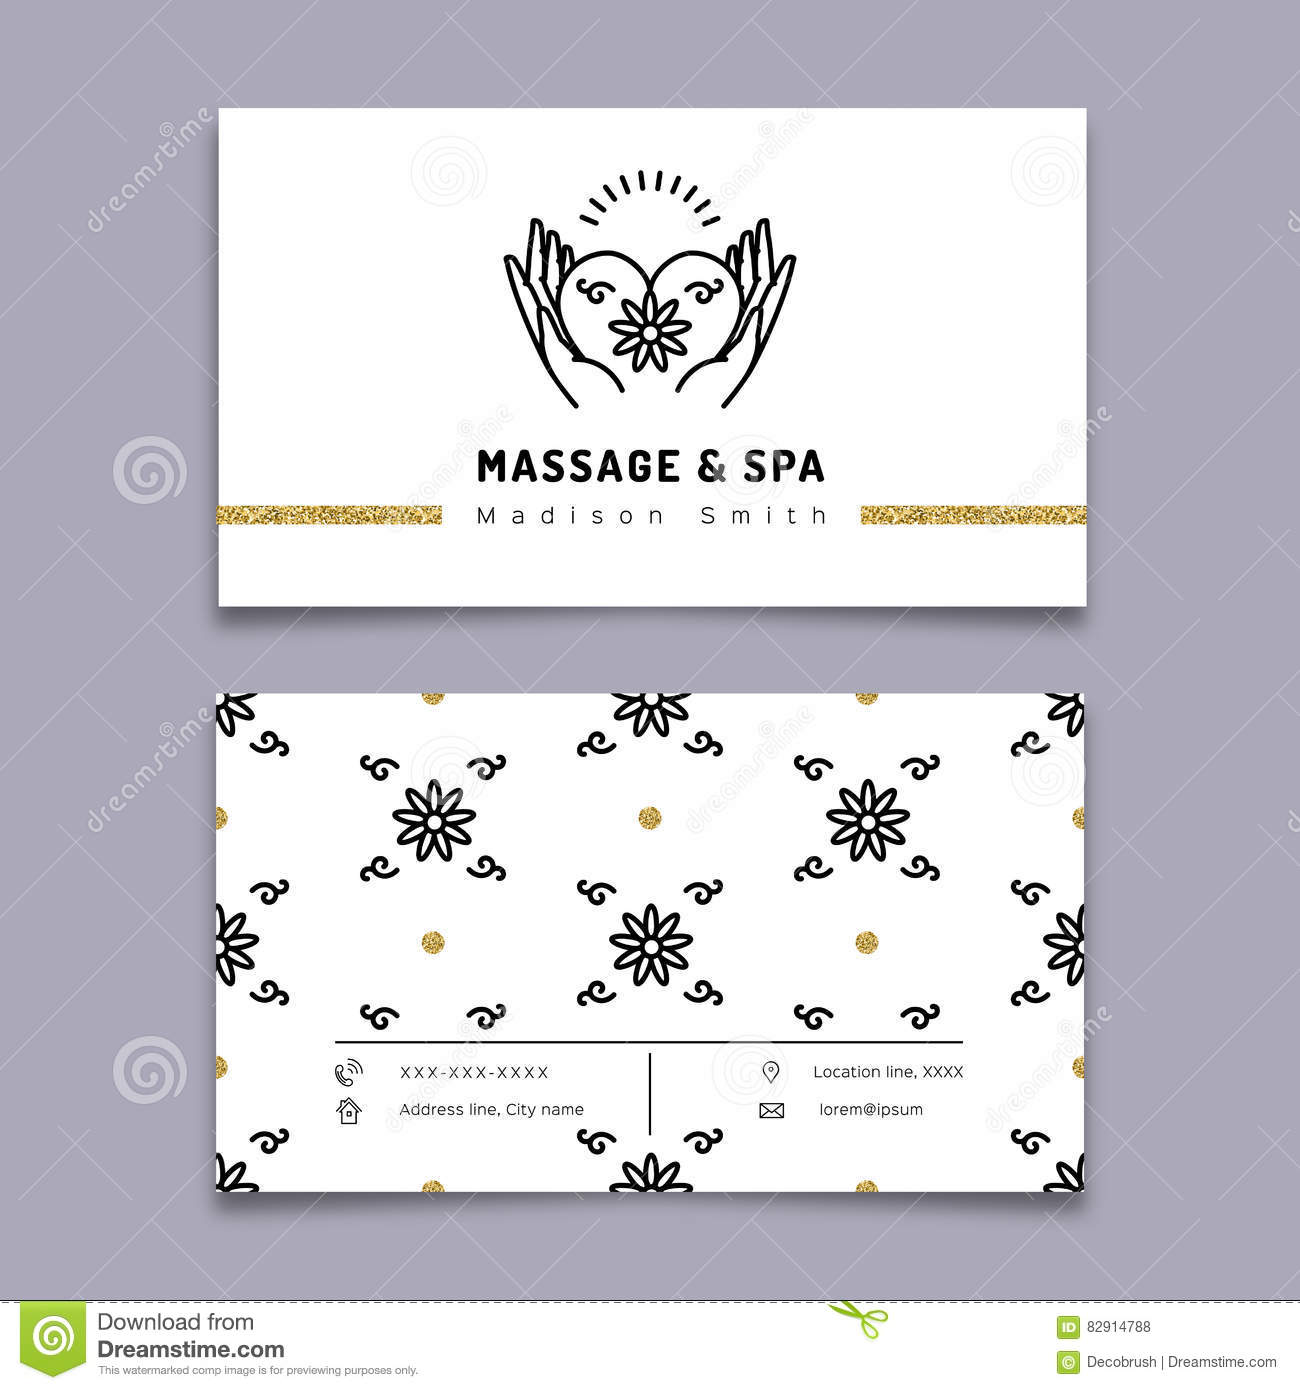 Massage and spa therapy business card template trendy line icon massage and spa therapy business card template trendy line icon cheaphphosting